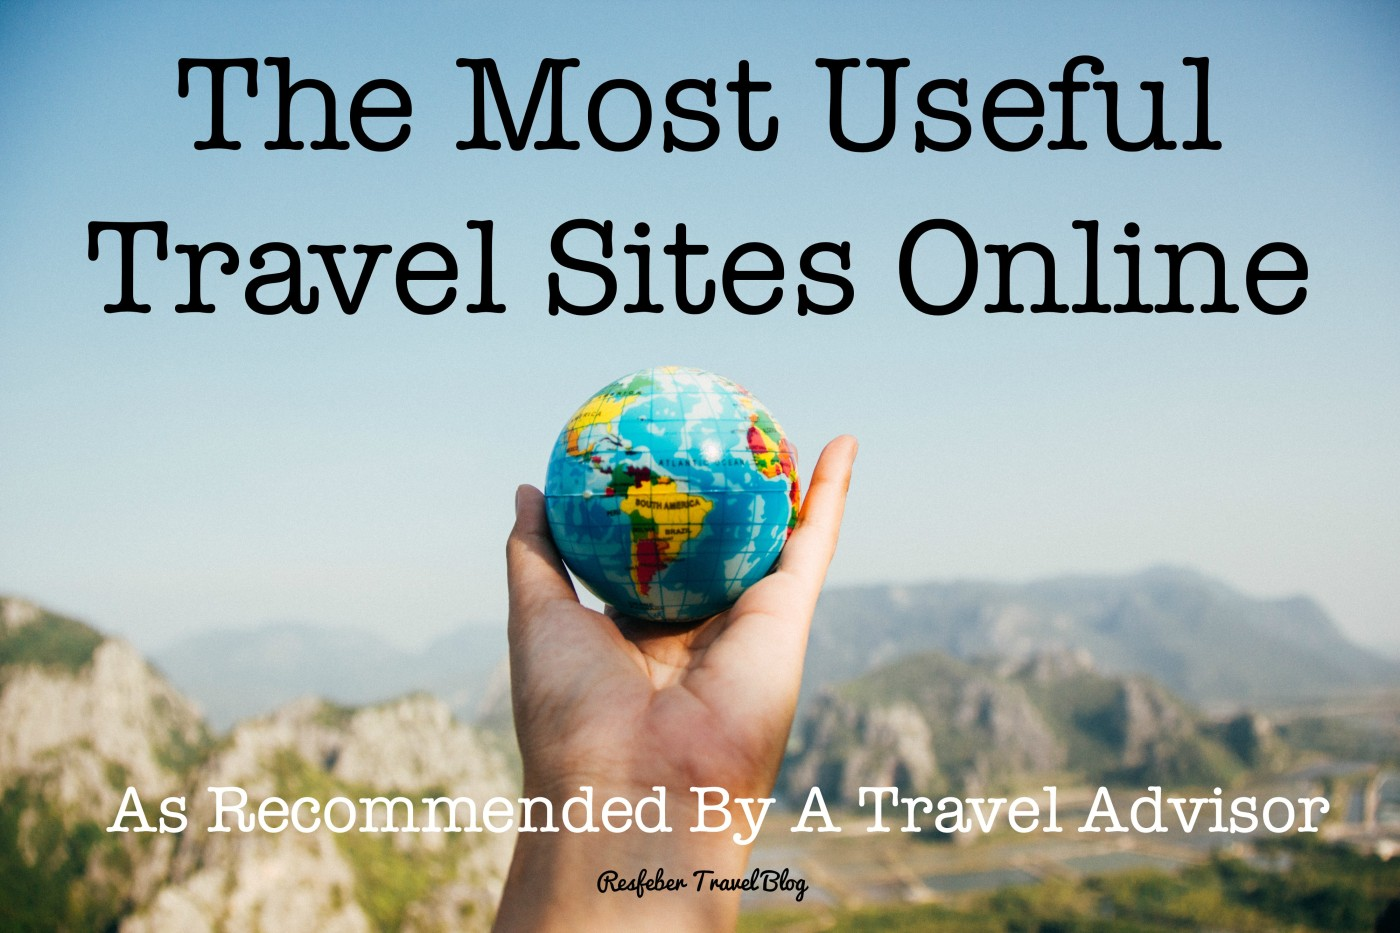 travel advisor online sites